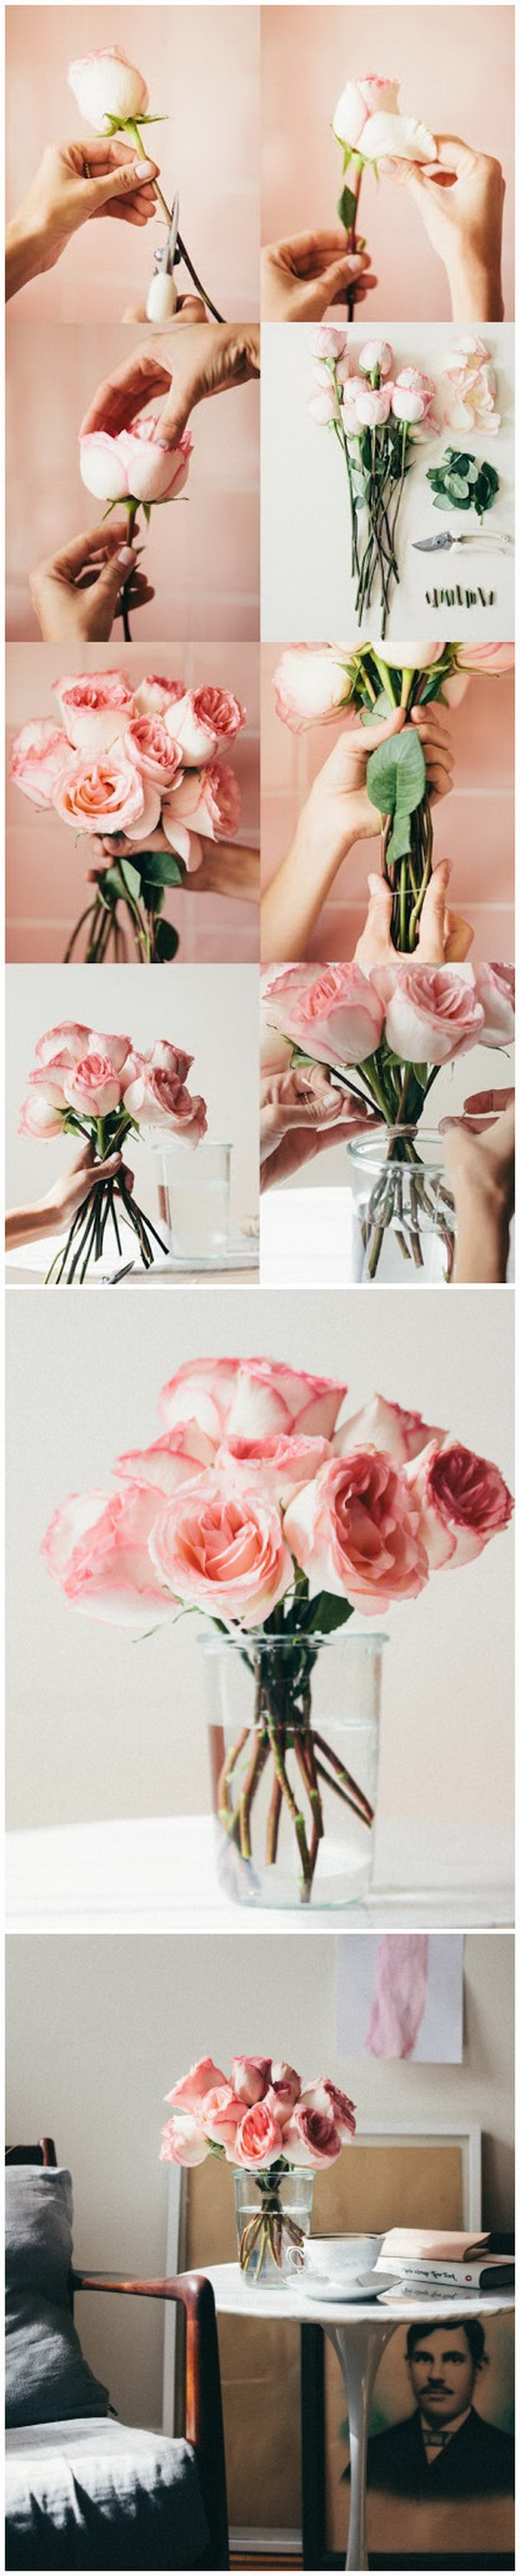 Arrange Supermarket Flowers. Arrange fresh flowers for your own taste and enjoyment and add elegance for your home decor.